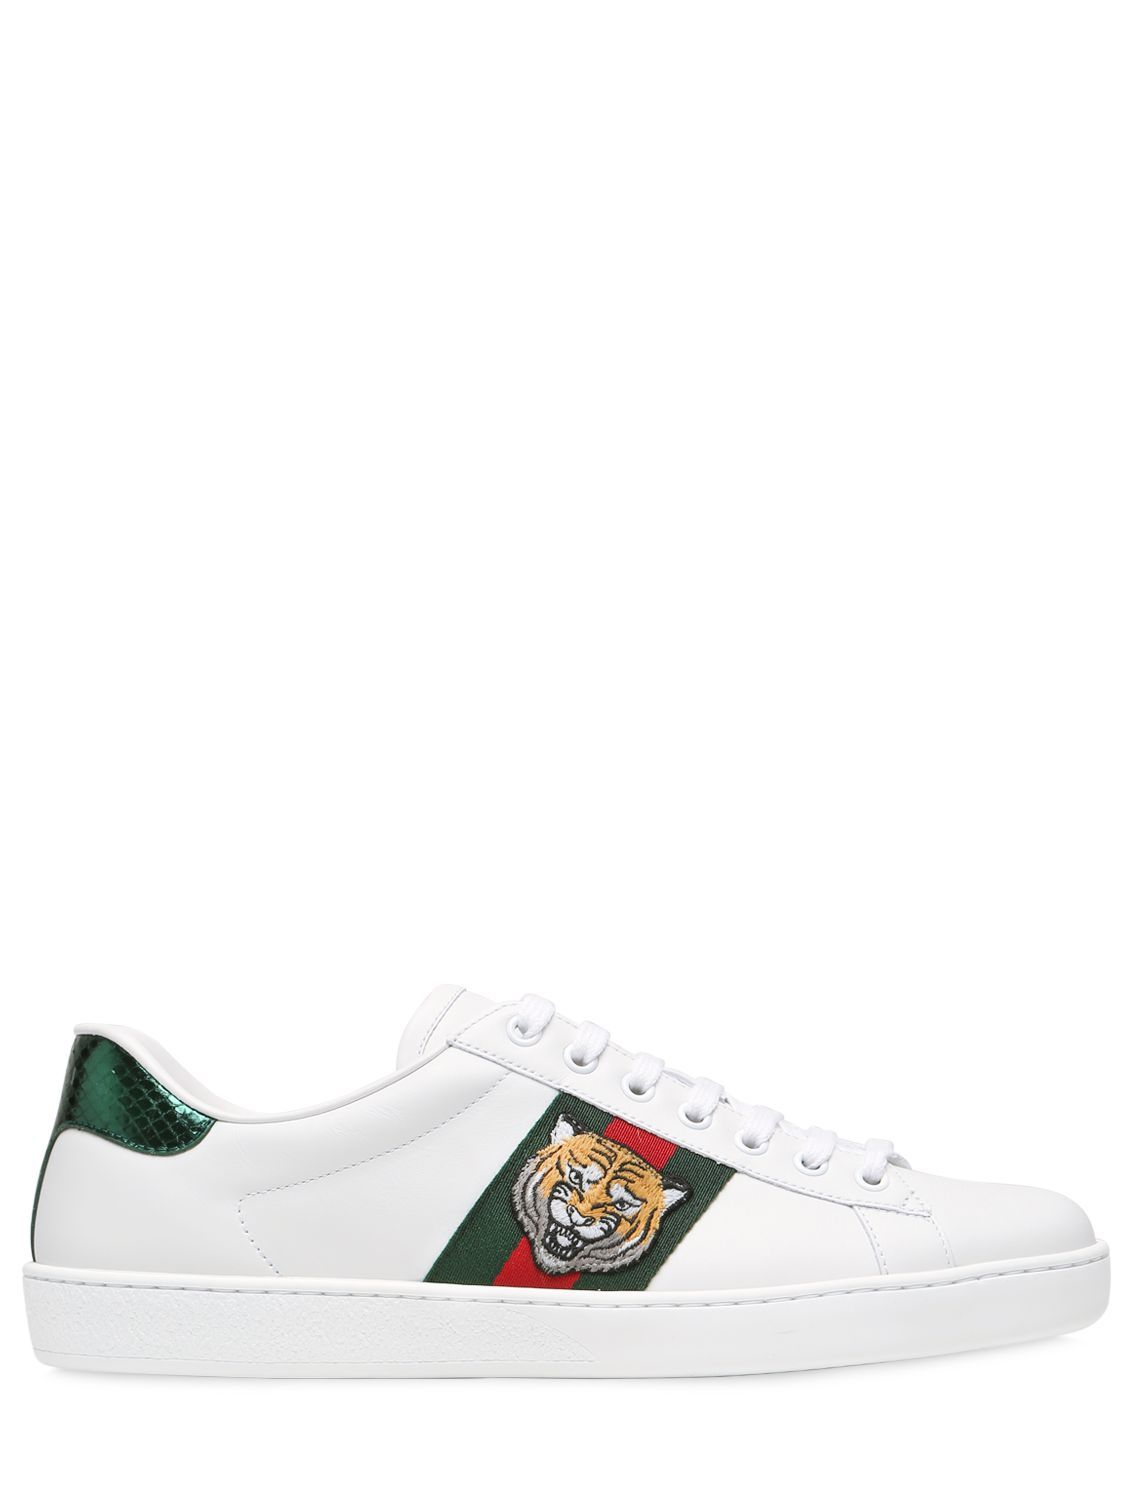 3397334dfce GUCCI TIGER NEW ACE LEATHER SNEAKERS W  AYERS.  gucci  shoes ...